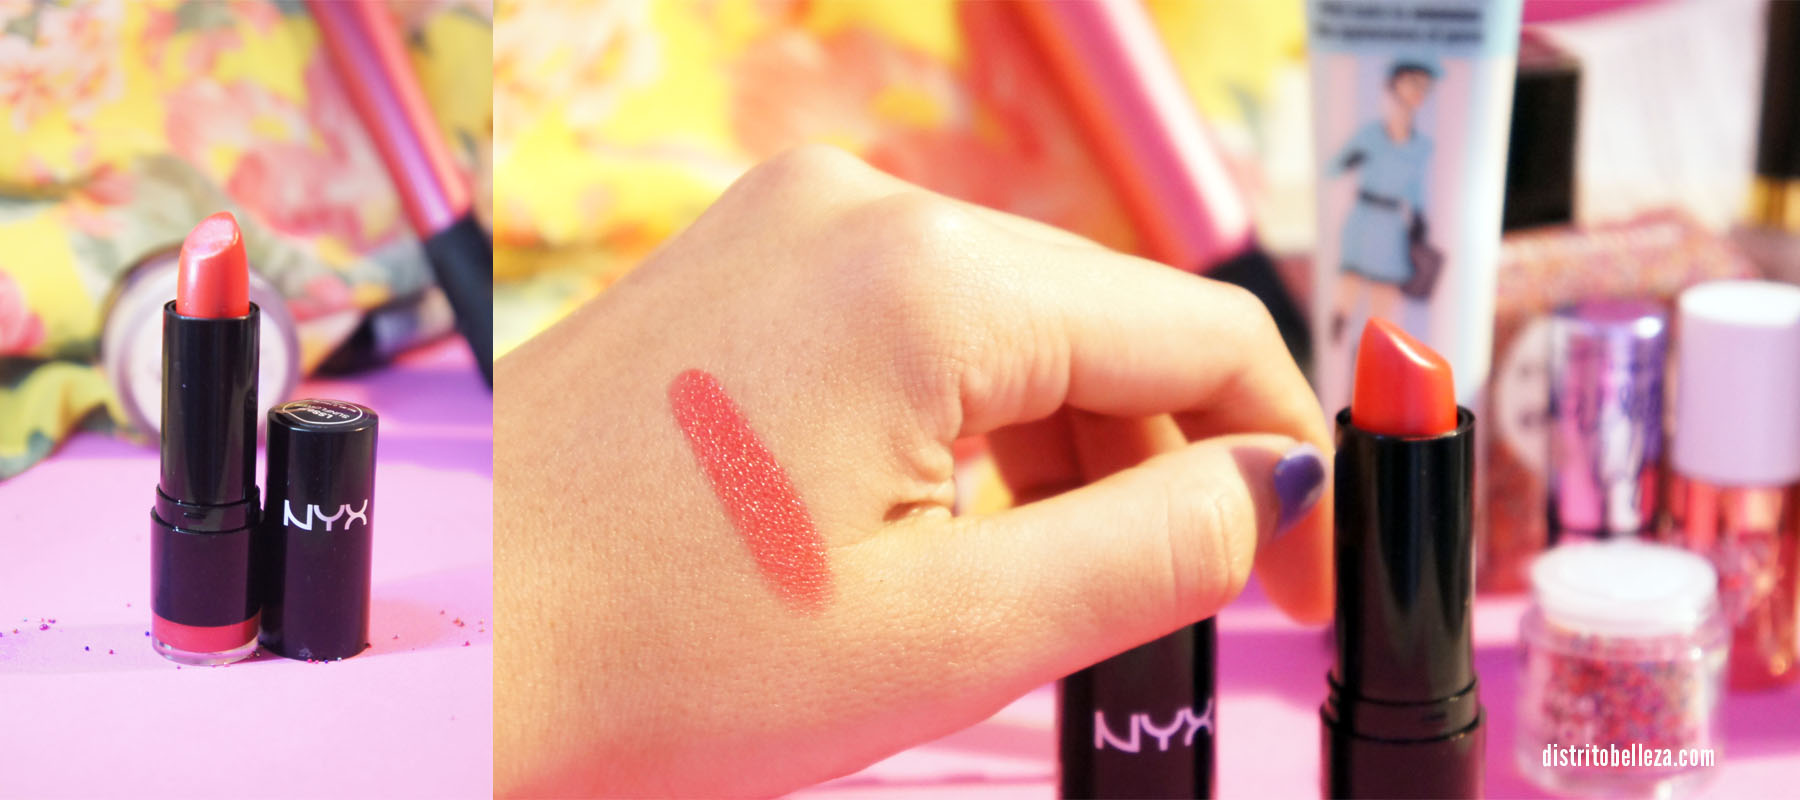 Favoritos Abril 2014 nyx labial